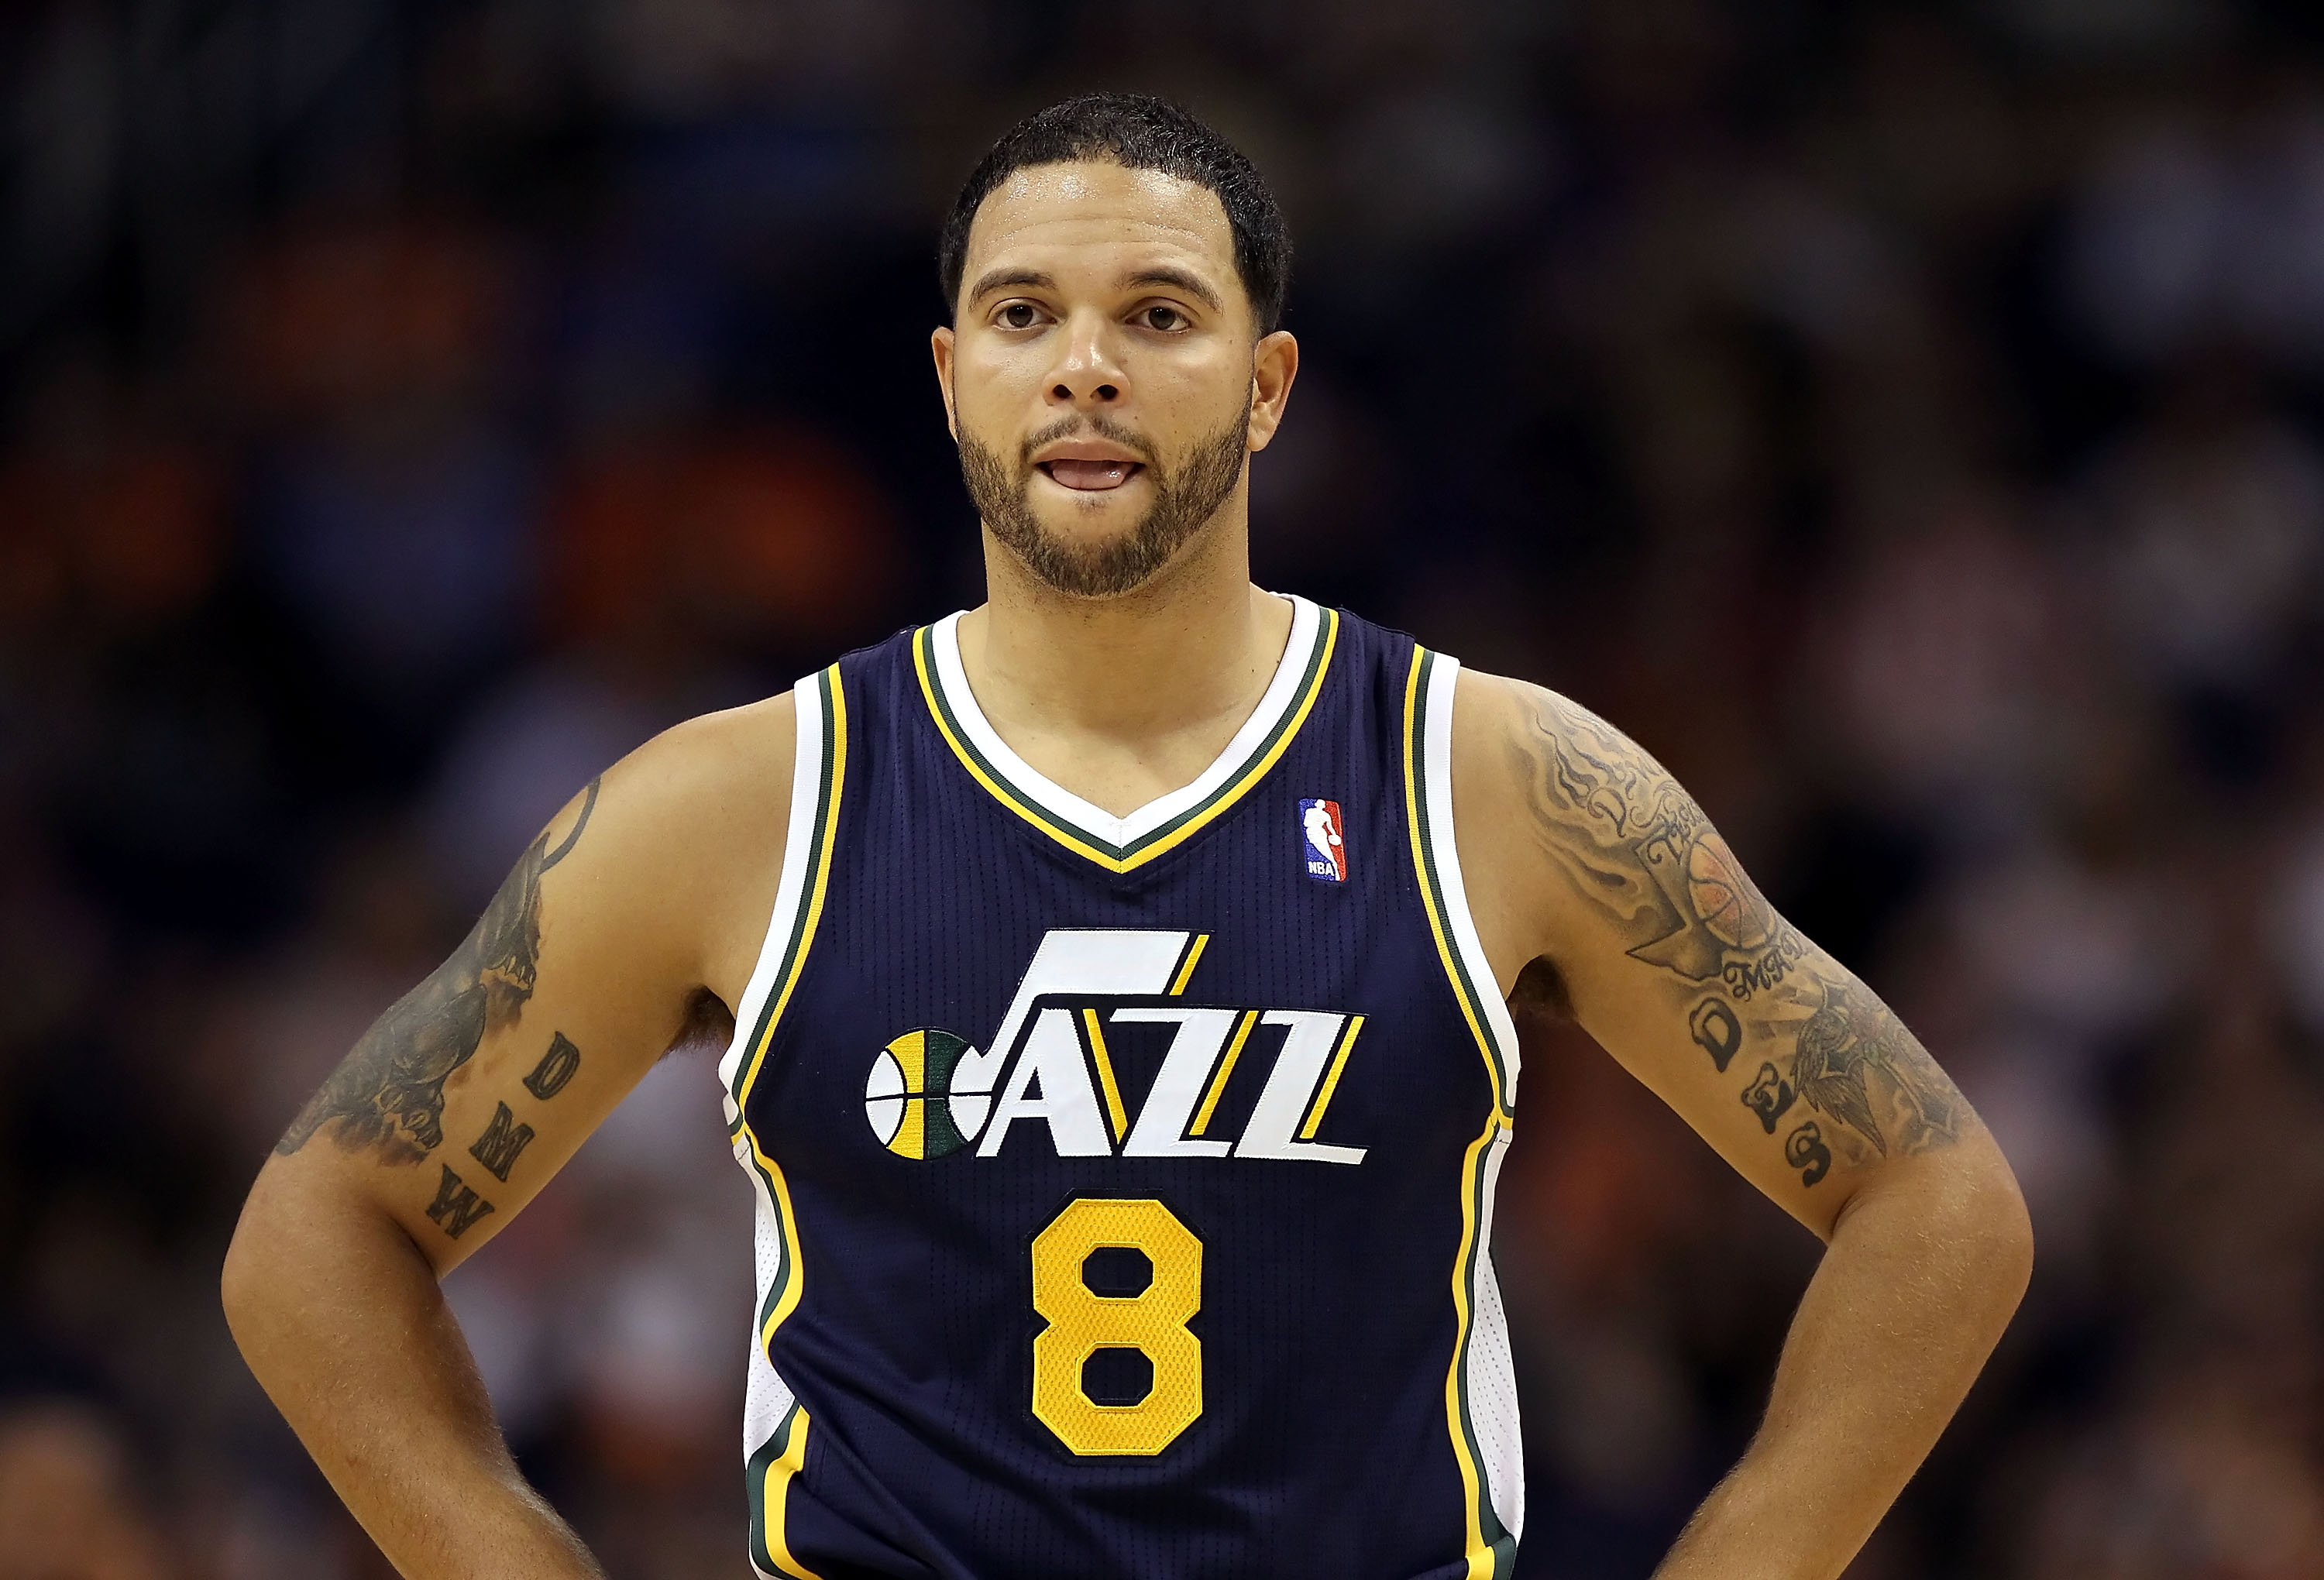 PHOENIX - OCTOBER 12:  Deron Williams #8 of the Utah Jazz in action during the preseason NBA game against the Phoenix Suns at US Airways Center on October 12, 2010 in Phoenix, Arizona. NOTE TO USER: User expressly acknowledges and agrees that, by download